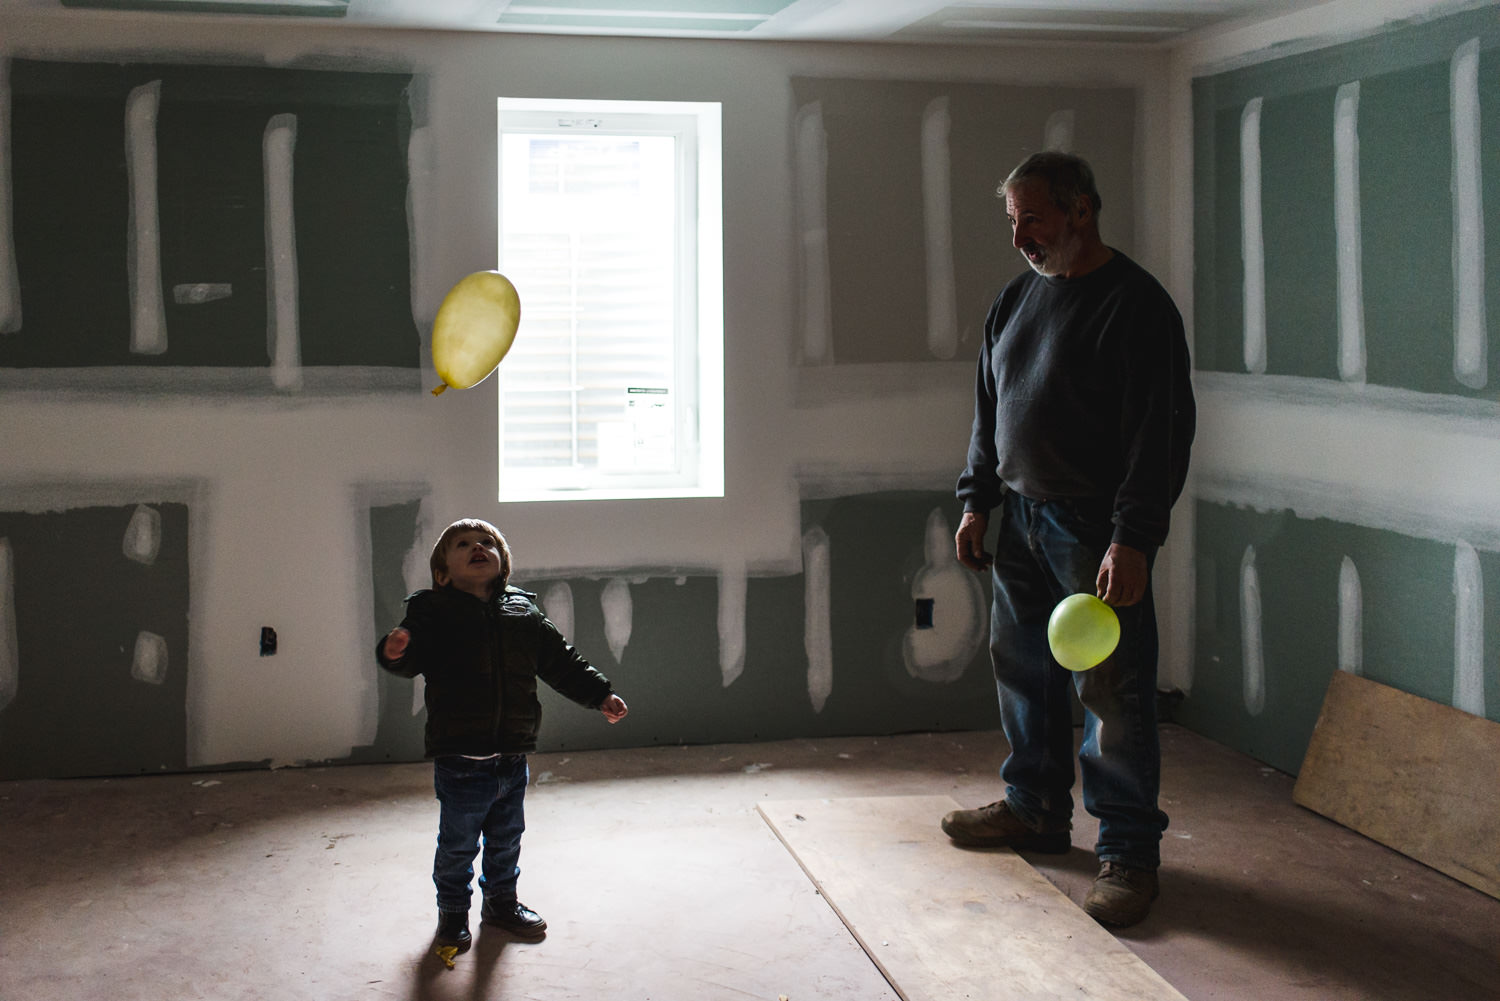 Little boy plays with a yellow balloon in a house under construction in West Hempstead, NY.